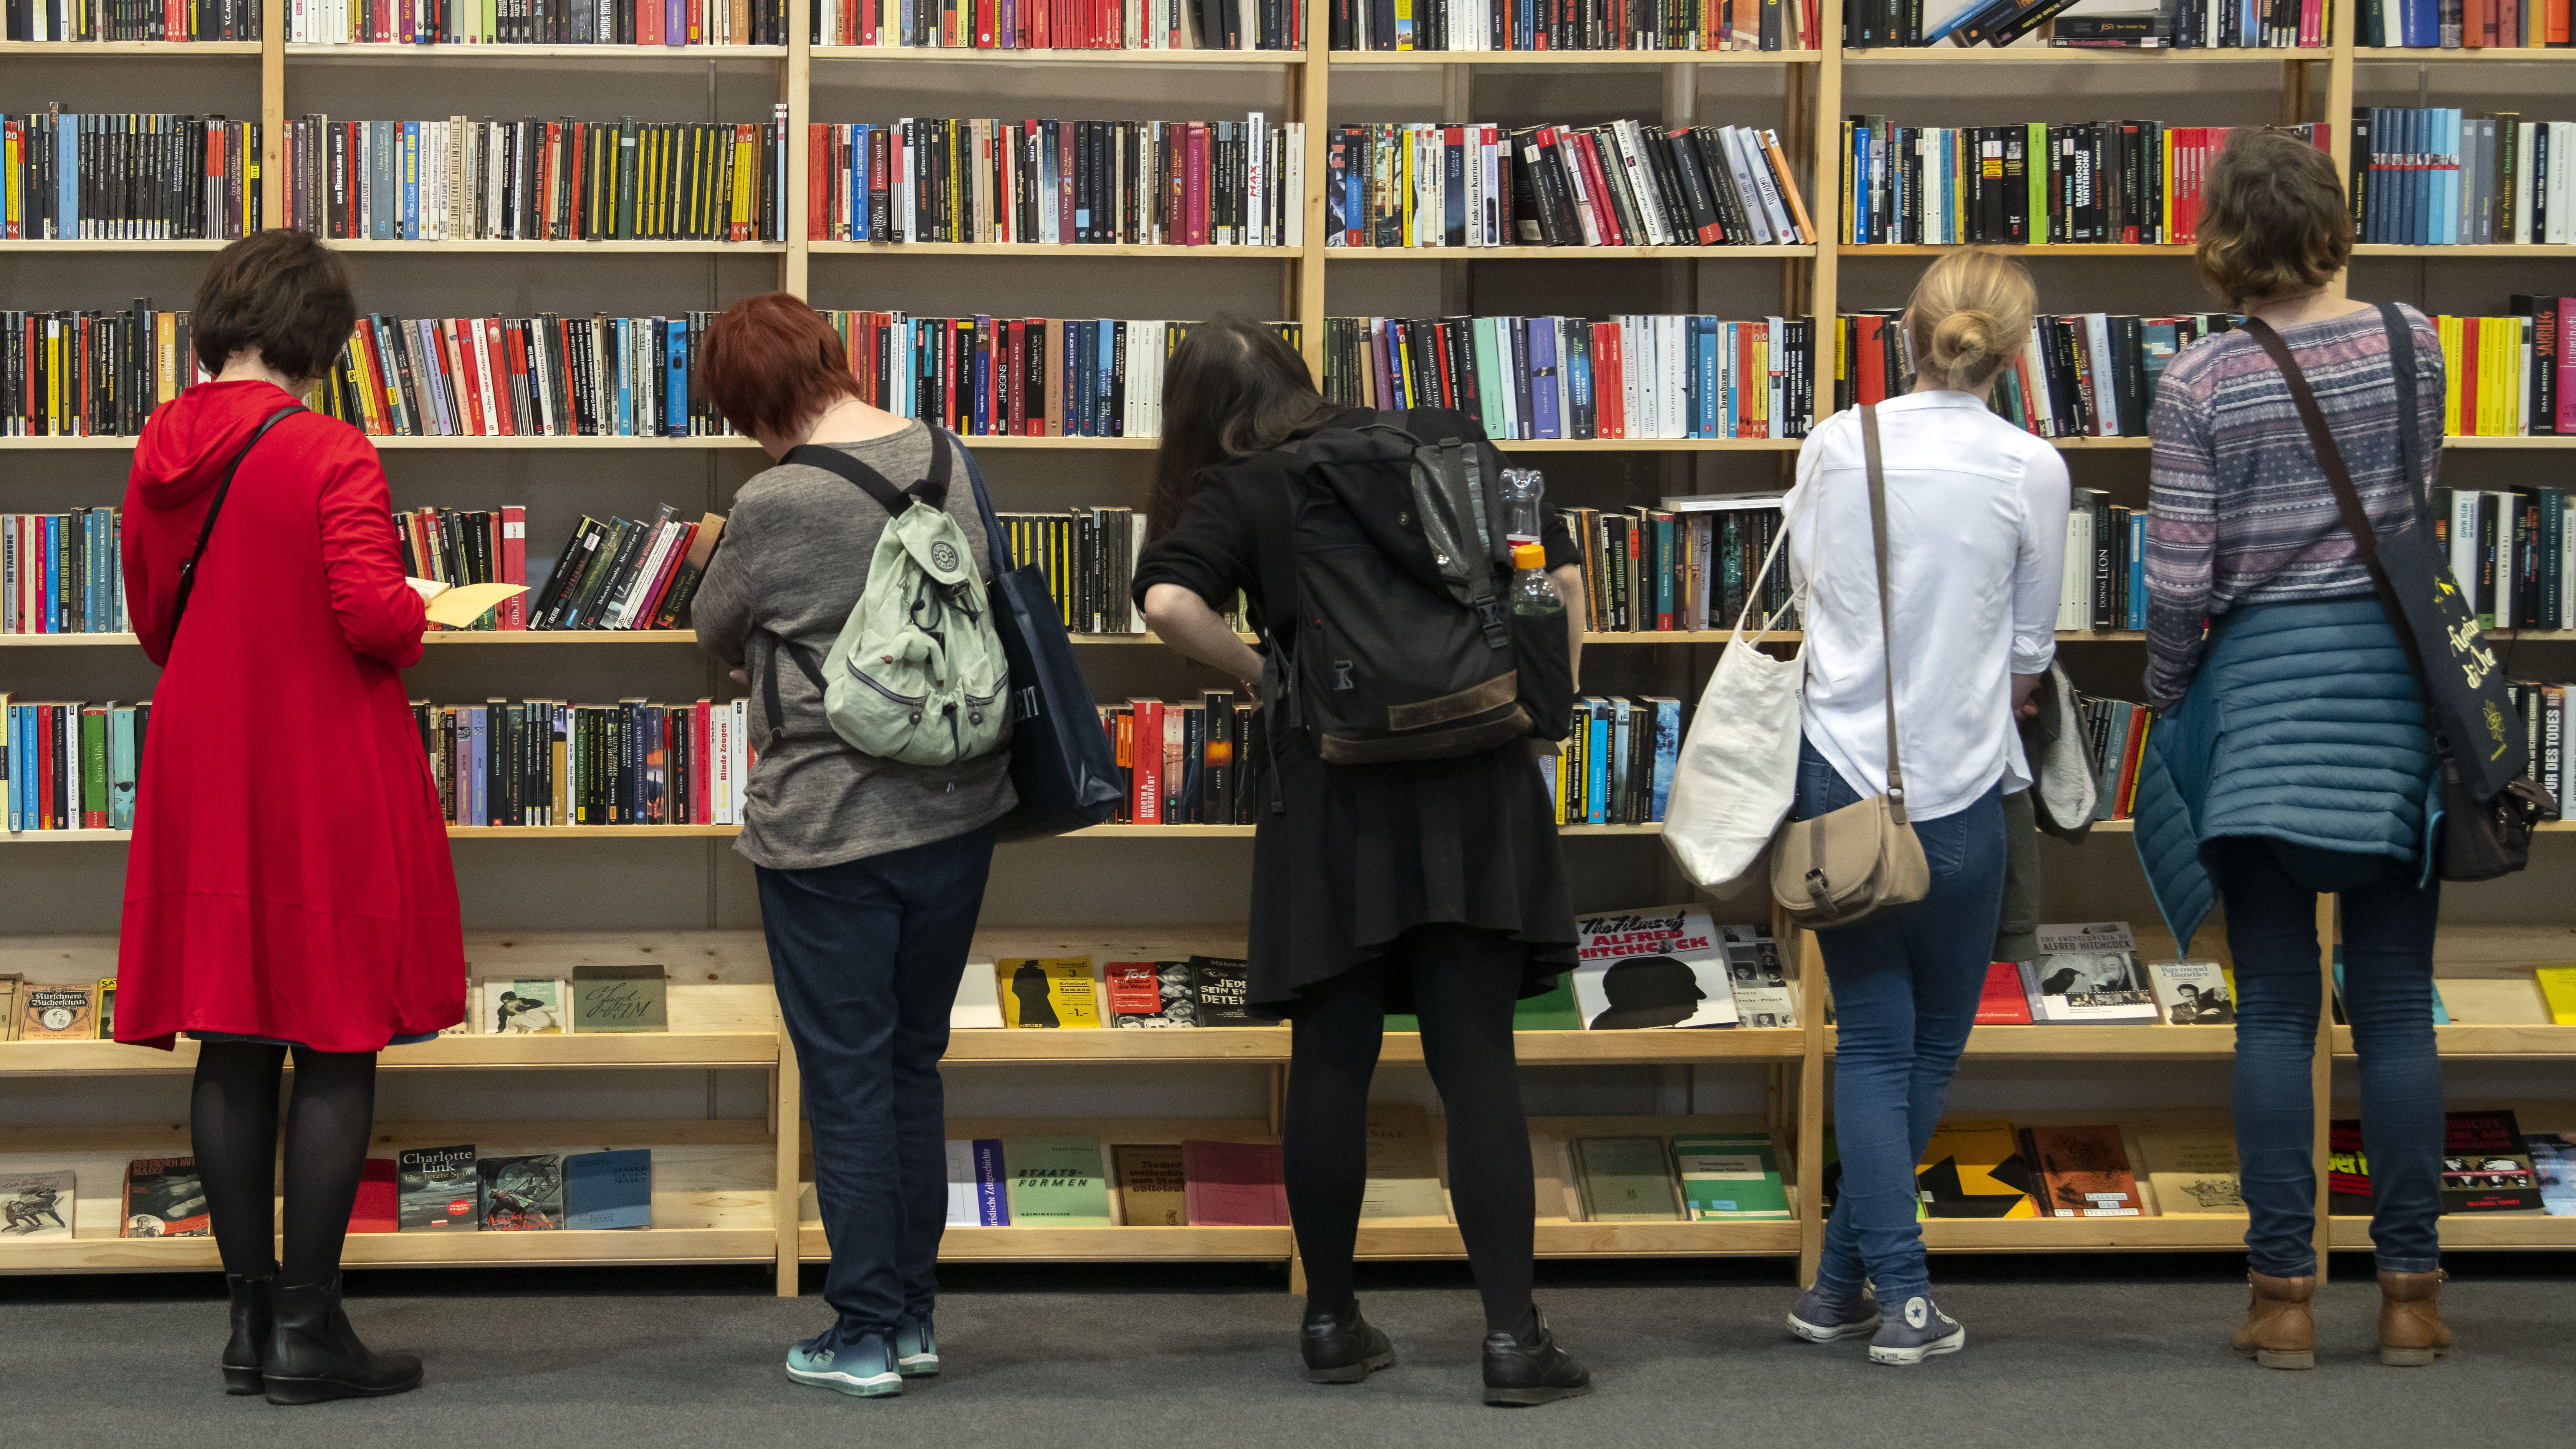 People looking at book shelves at a store.